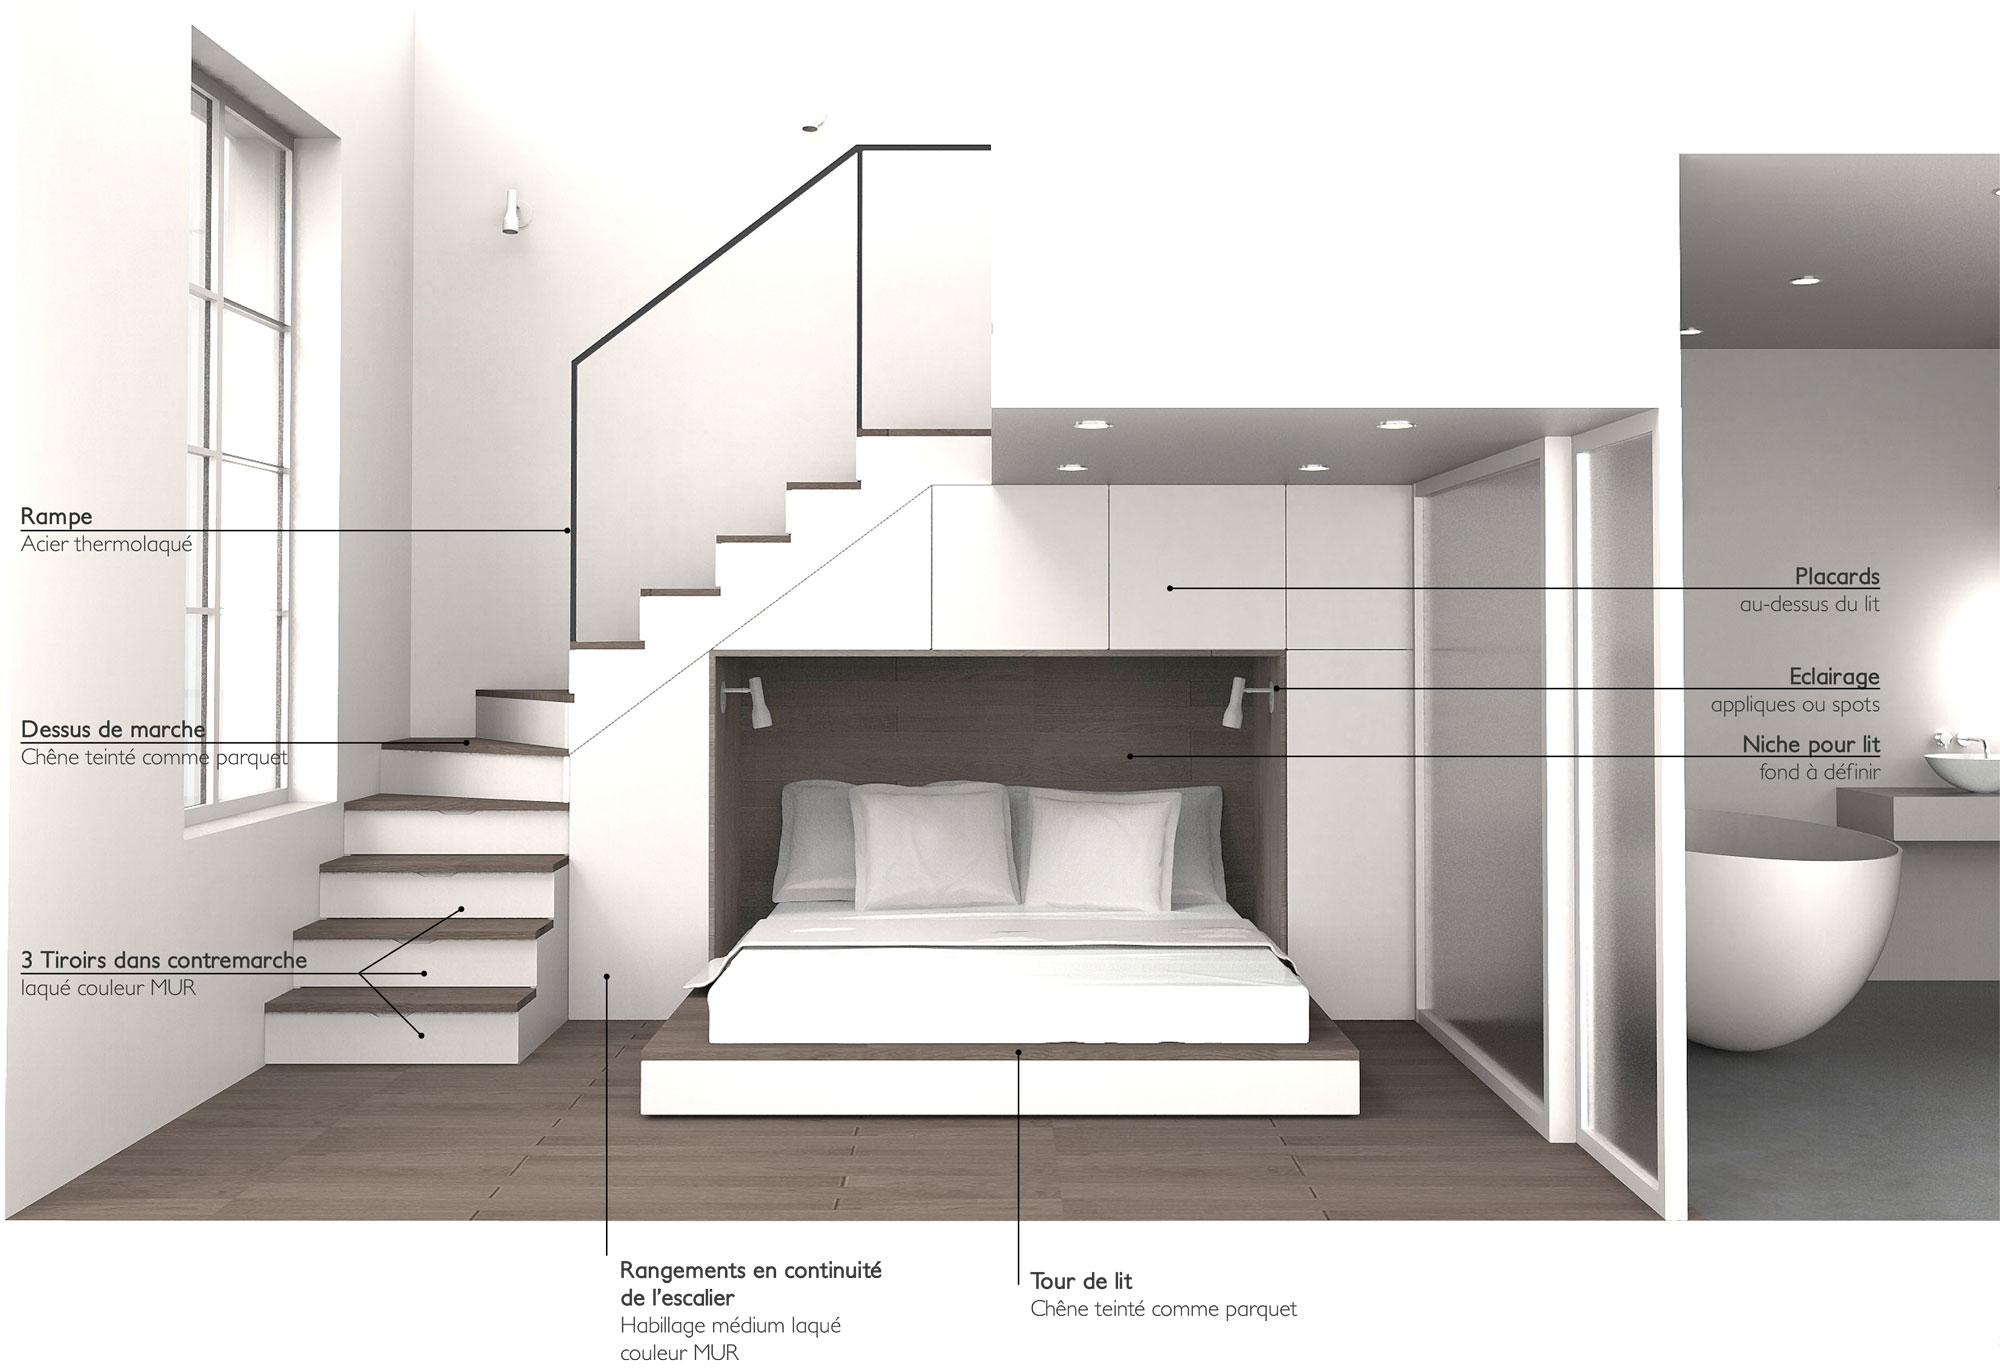 am nagement d une chambre sous une mezzanine en cours charlotte raynaud. Black Bedroom Furniture Sets. Home Design Ideas